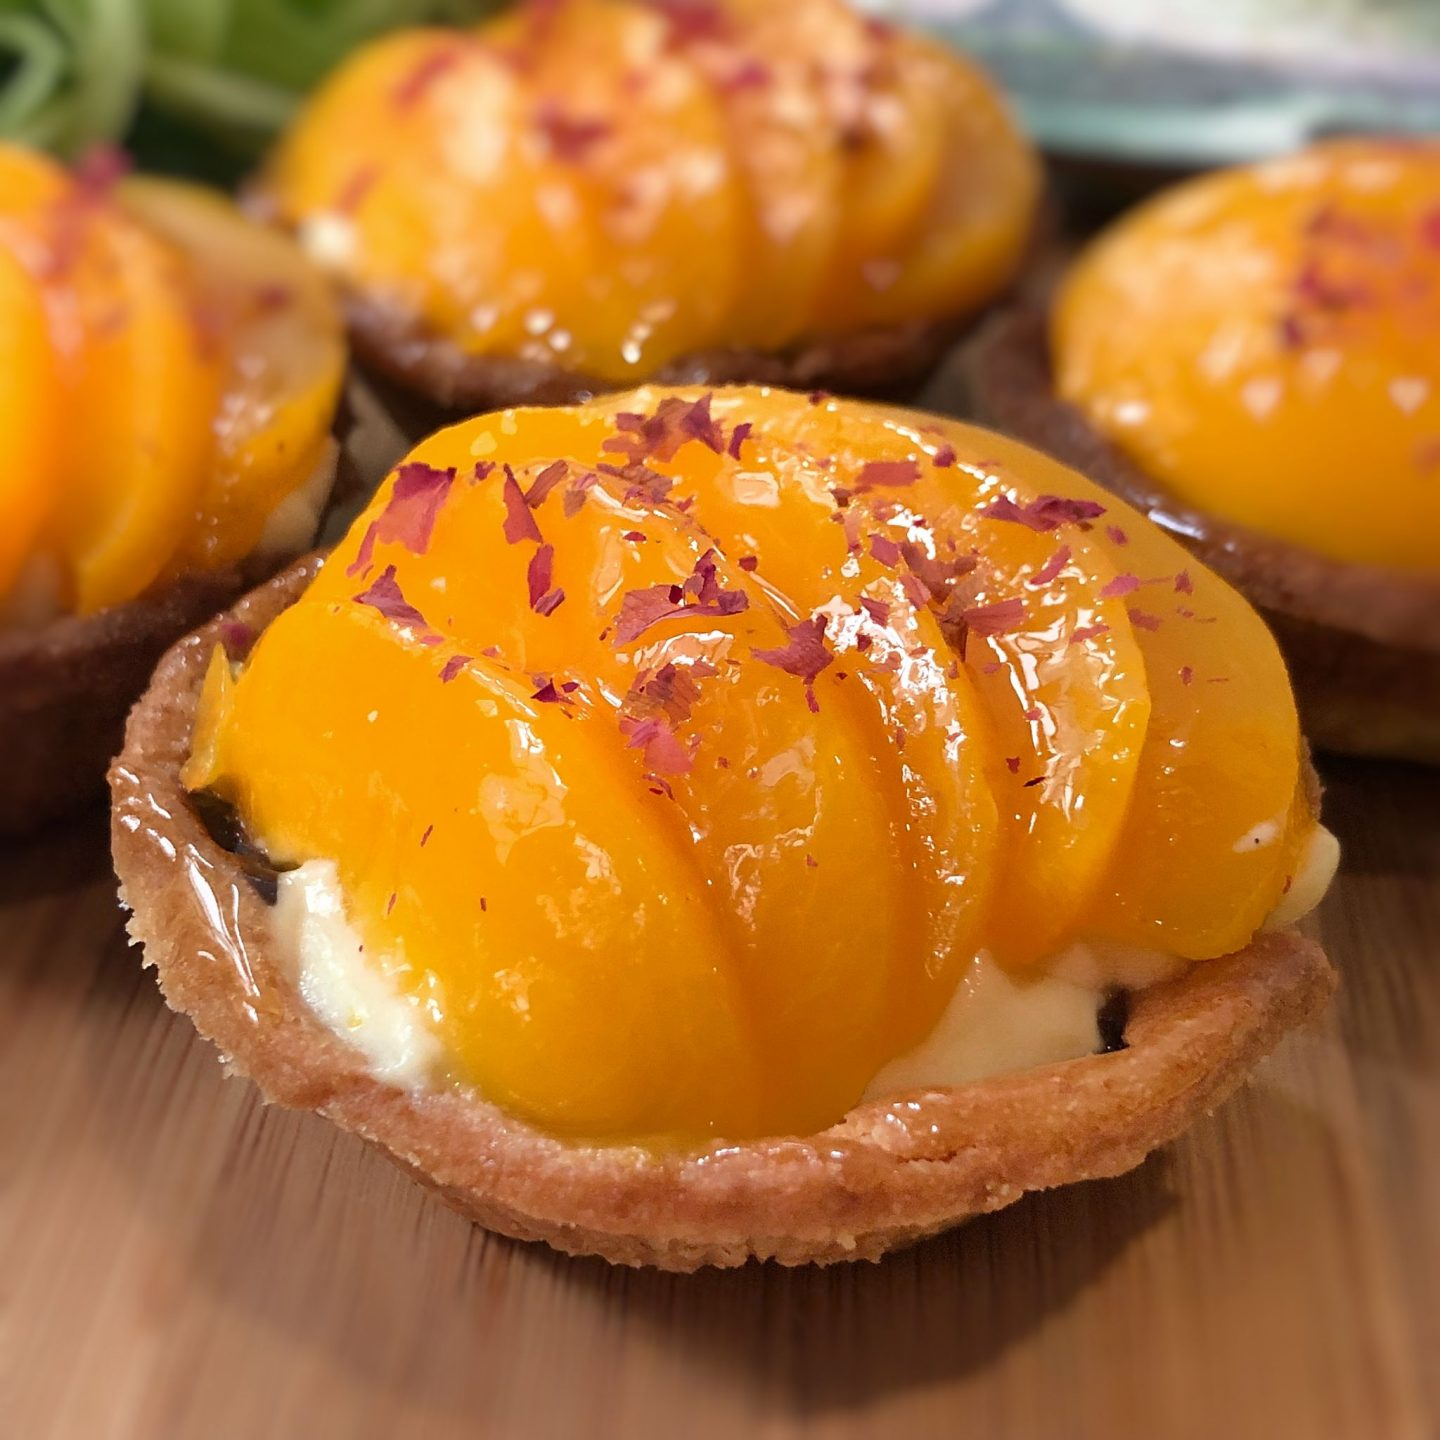 Custard Fruit Tart with Peach